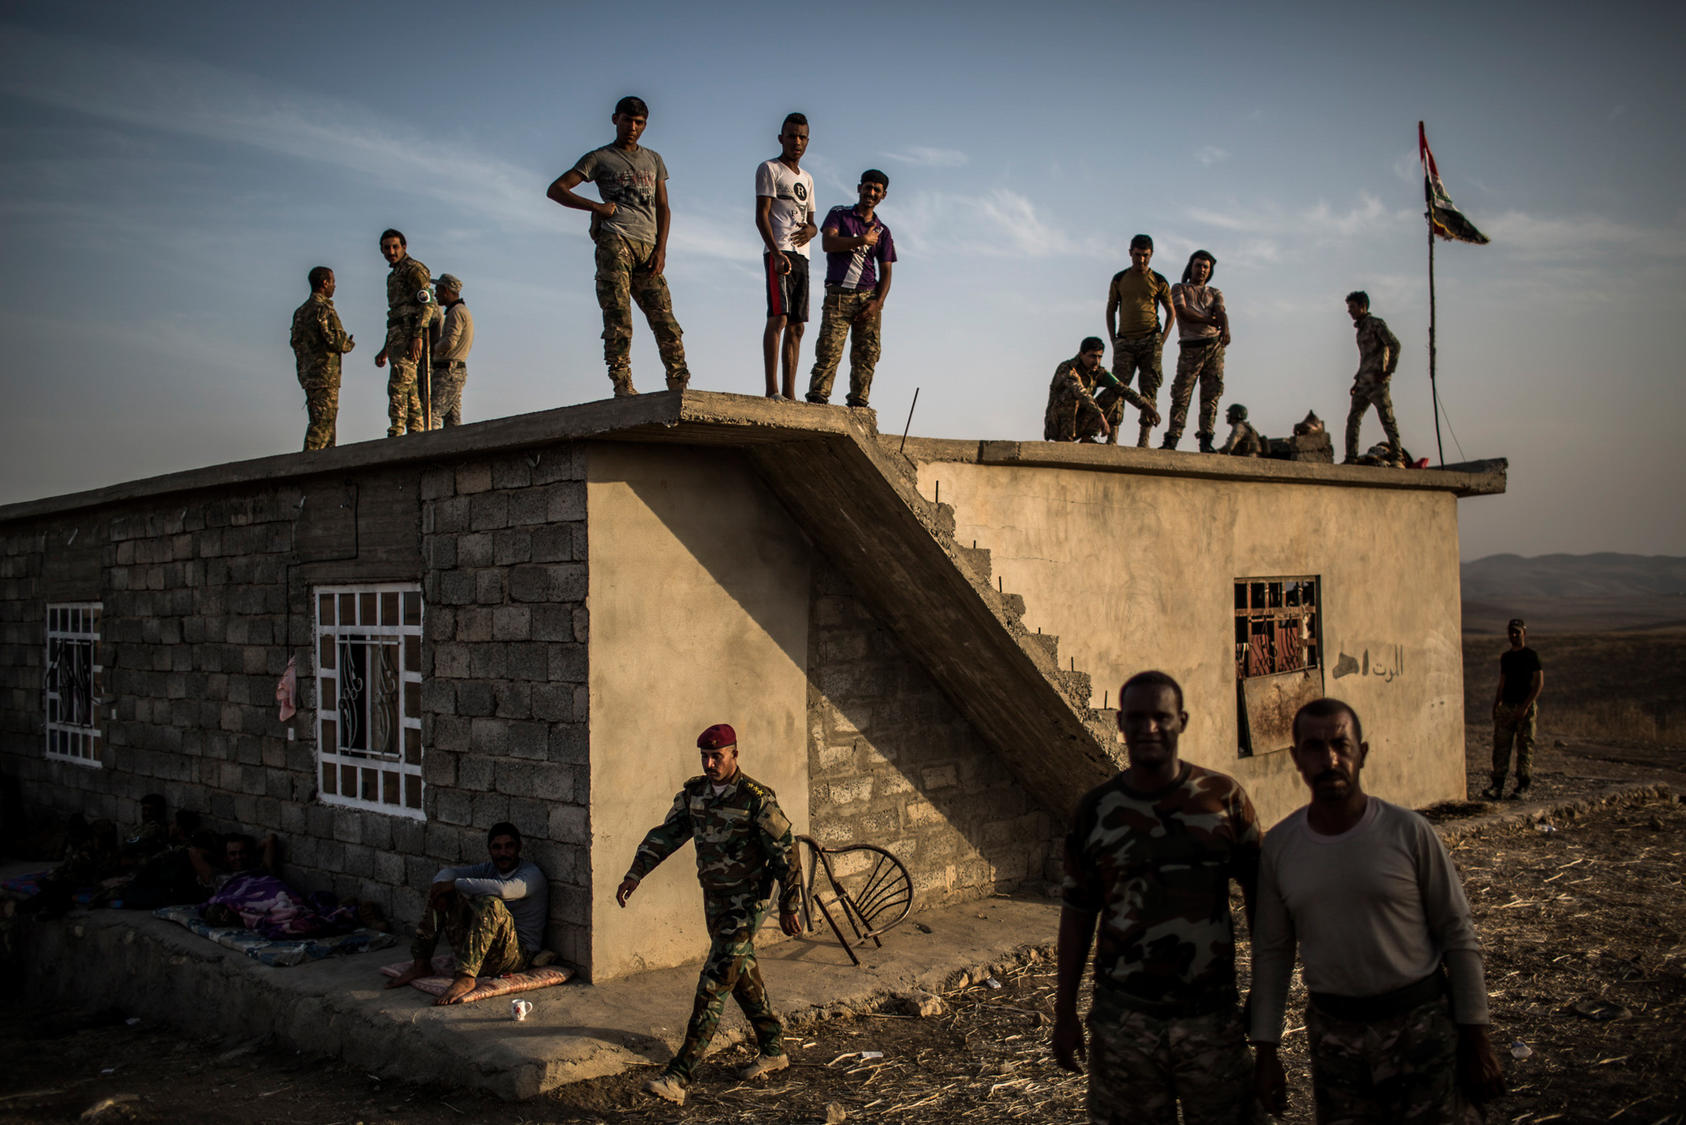 Sunni Arab fighters, many of whom fled Mosul when the Islamic State group captured the city two years ago, wait at their base near the Mosul Dam Oct. 18, 2016. Photo Courtesy of The New York Times/Bryan Denton